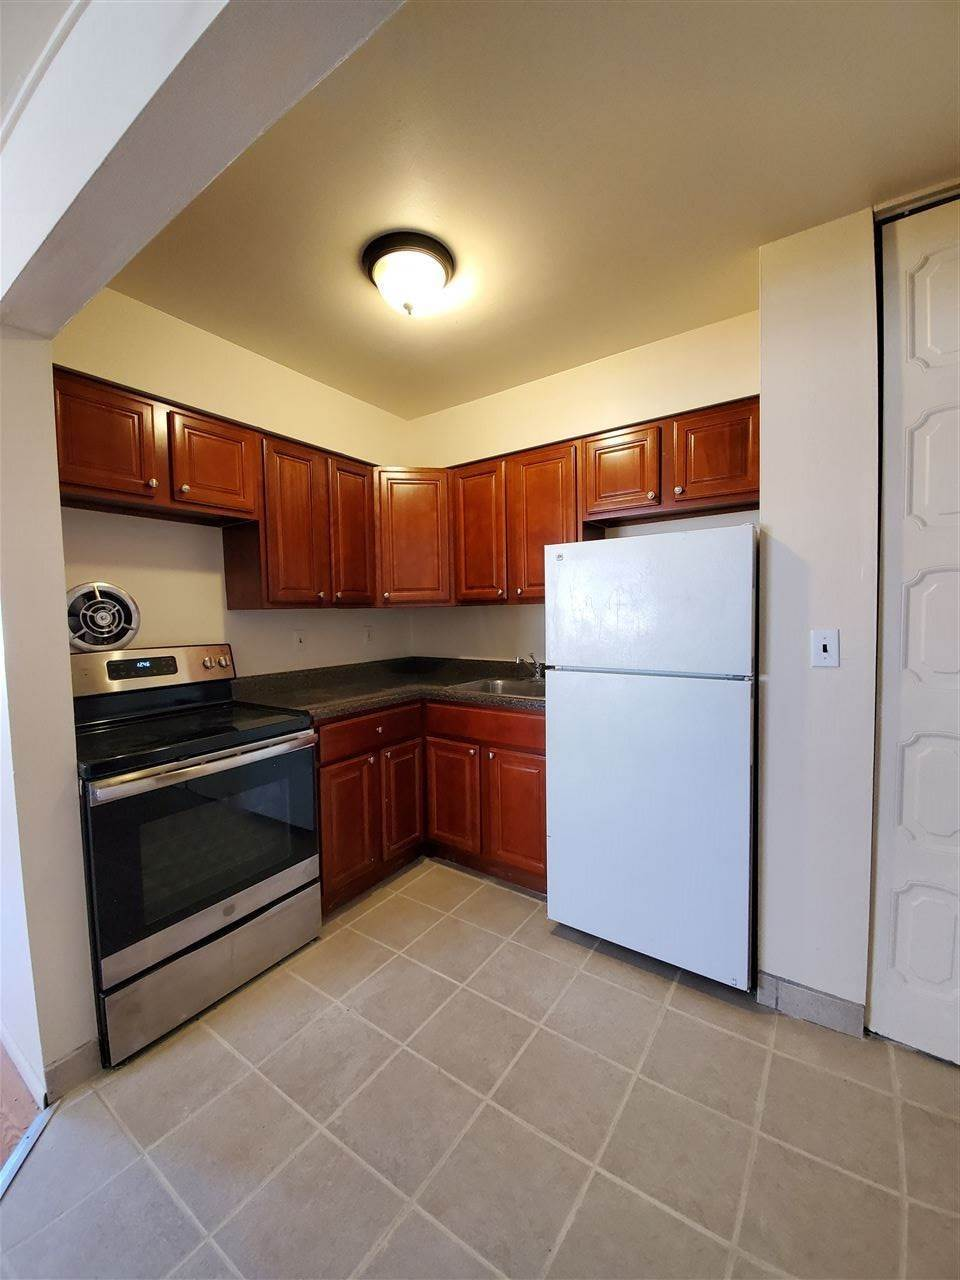 2. Apartments / Flats for Rent at 231 69TH STREET Guttenberg, New Jersey, 07087 United States